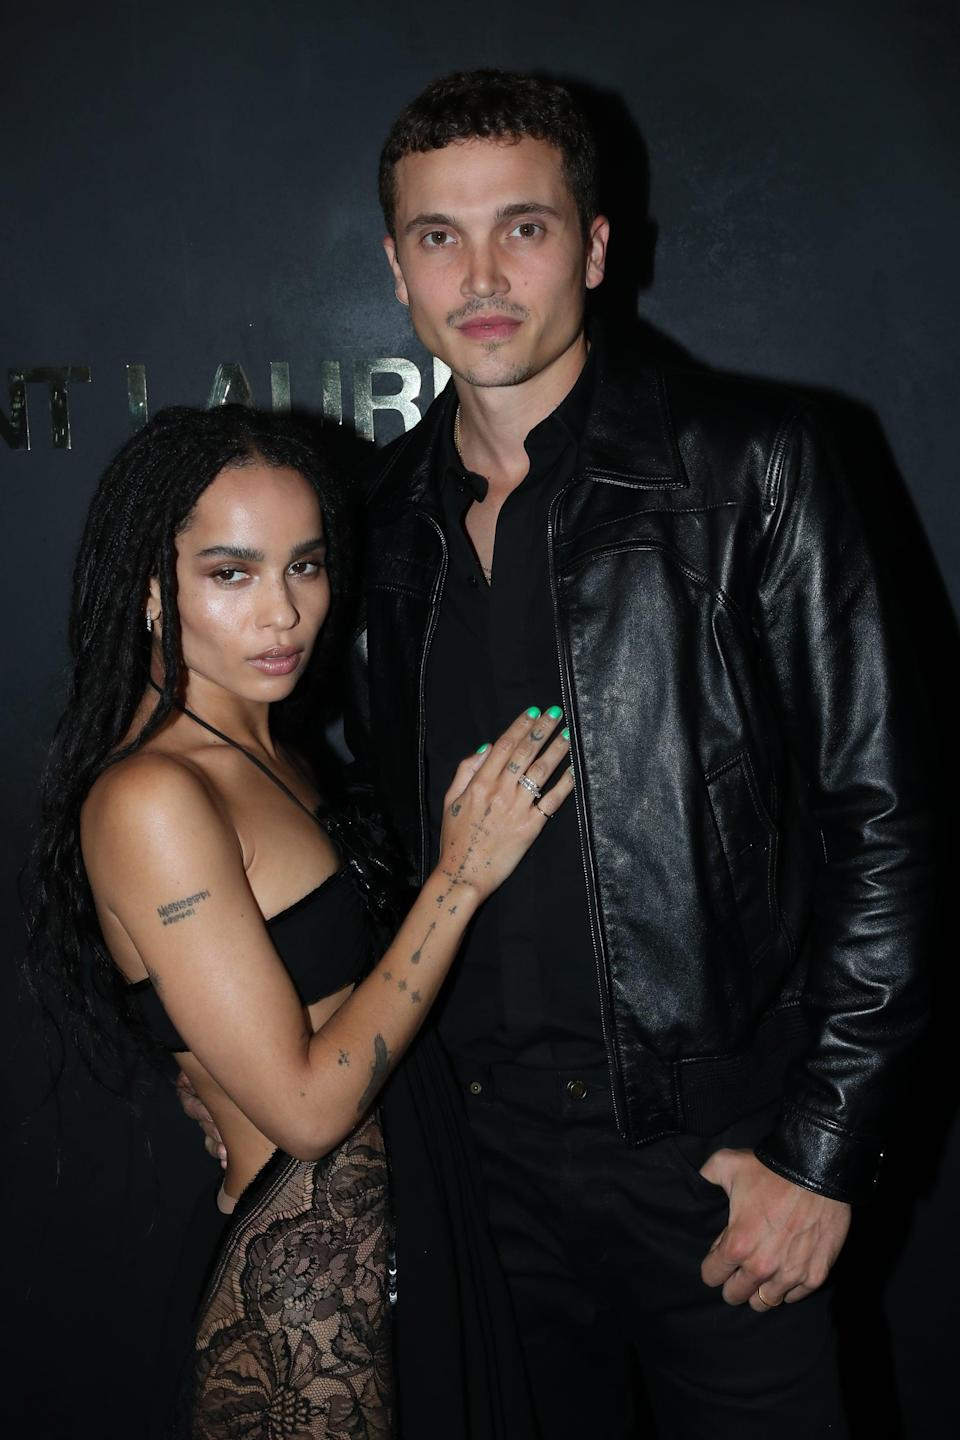 "<p><a href=""https://www.popsugar.com/celebrity/zoe-kravitz-and-karl-glusman-break-up-48088027"" class=""link rapid-noclick-resp"" rel=""nofollow noopener"" target=""_blank"" data-ylk=""slk:Zoë technically filed for divorce"">Zoë technically filed for divorce</a> from Karl after a year of marriage in December 2020, but it wasn't until January that <a href=""https://people.com/movies/zoe-kravitz-files-for-divorce-from-karl-glusman/"" class=""link rapid-noclick-resp"" rel=""nofollow noopener"" target=""_blank"" data-ylk=""slk:her rep confirmed the news"">her rep confirmed the news</a> to <b>People</b>. No other details were revealed at the time.</p>"